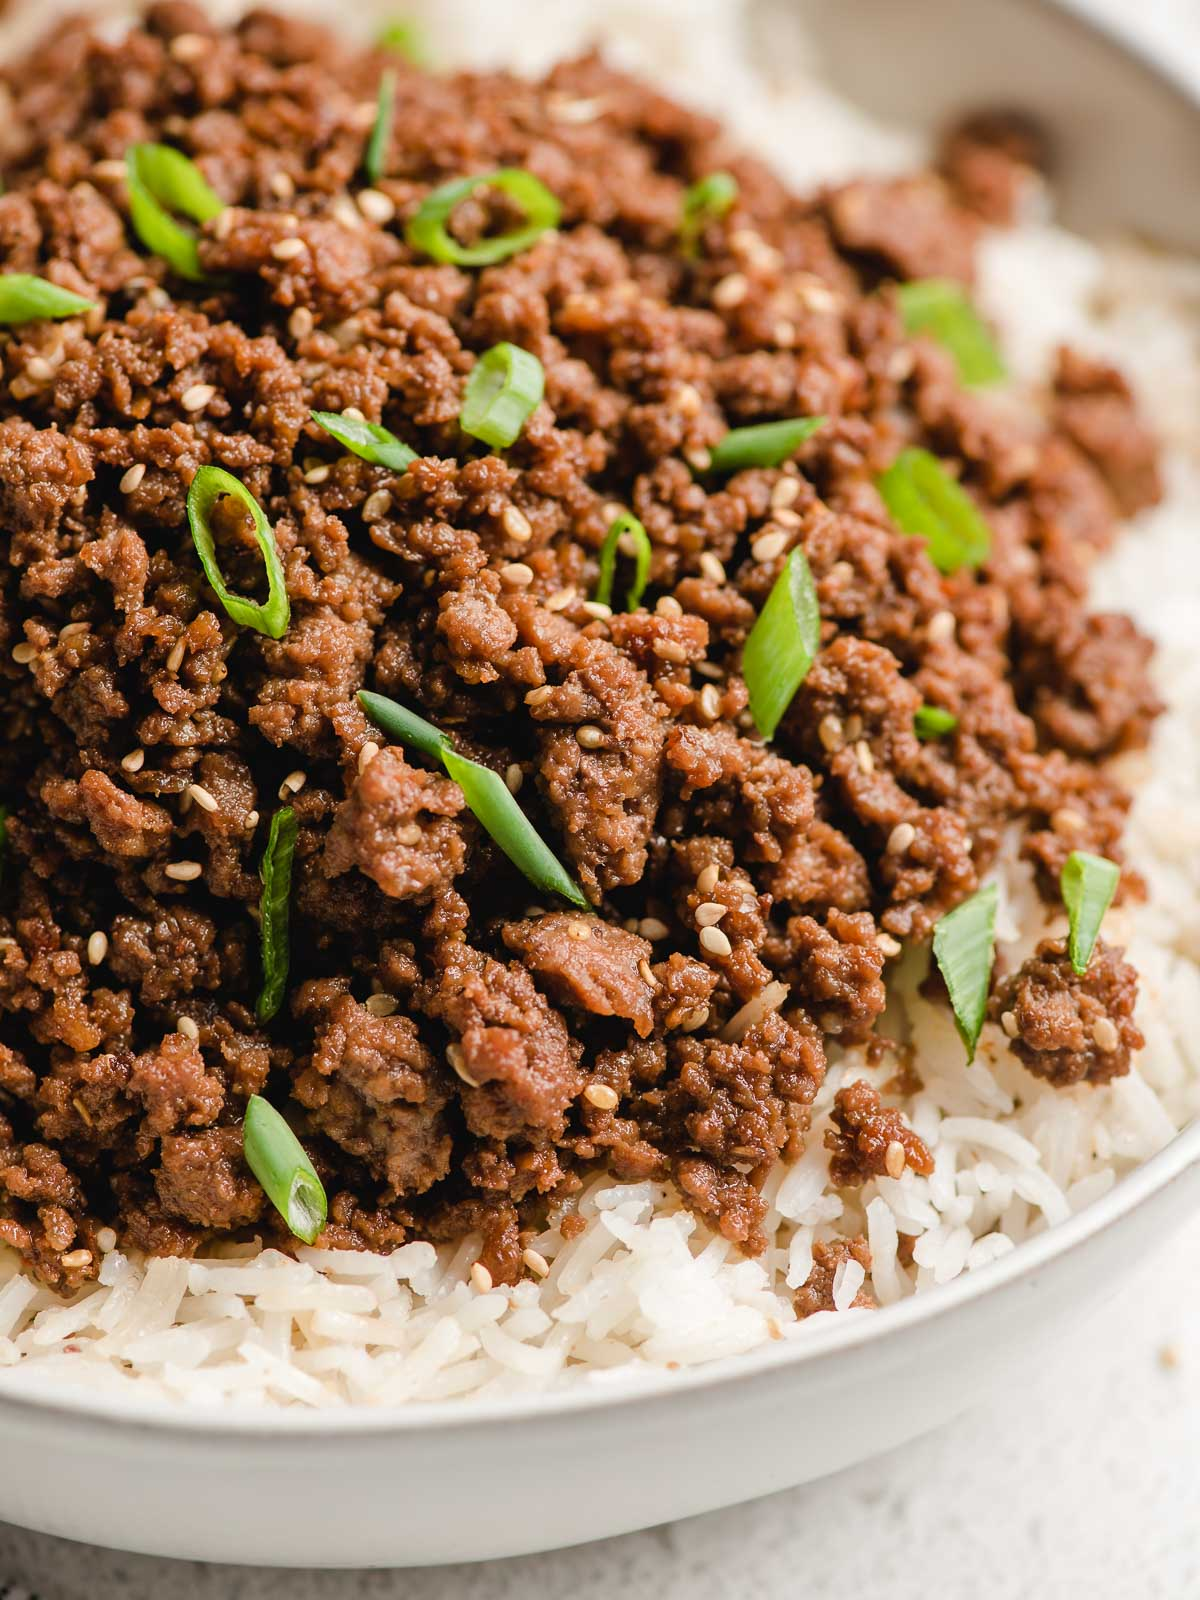 Ground beef bulgogi in a bowl with rice.